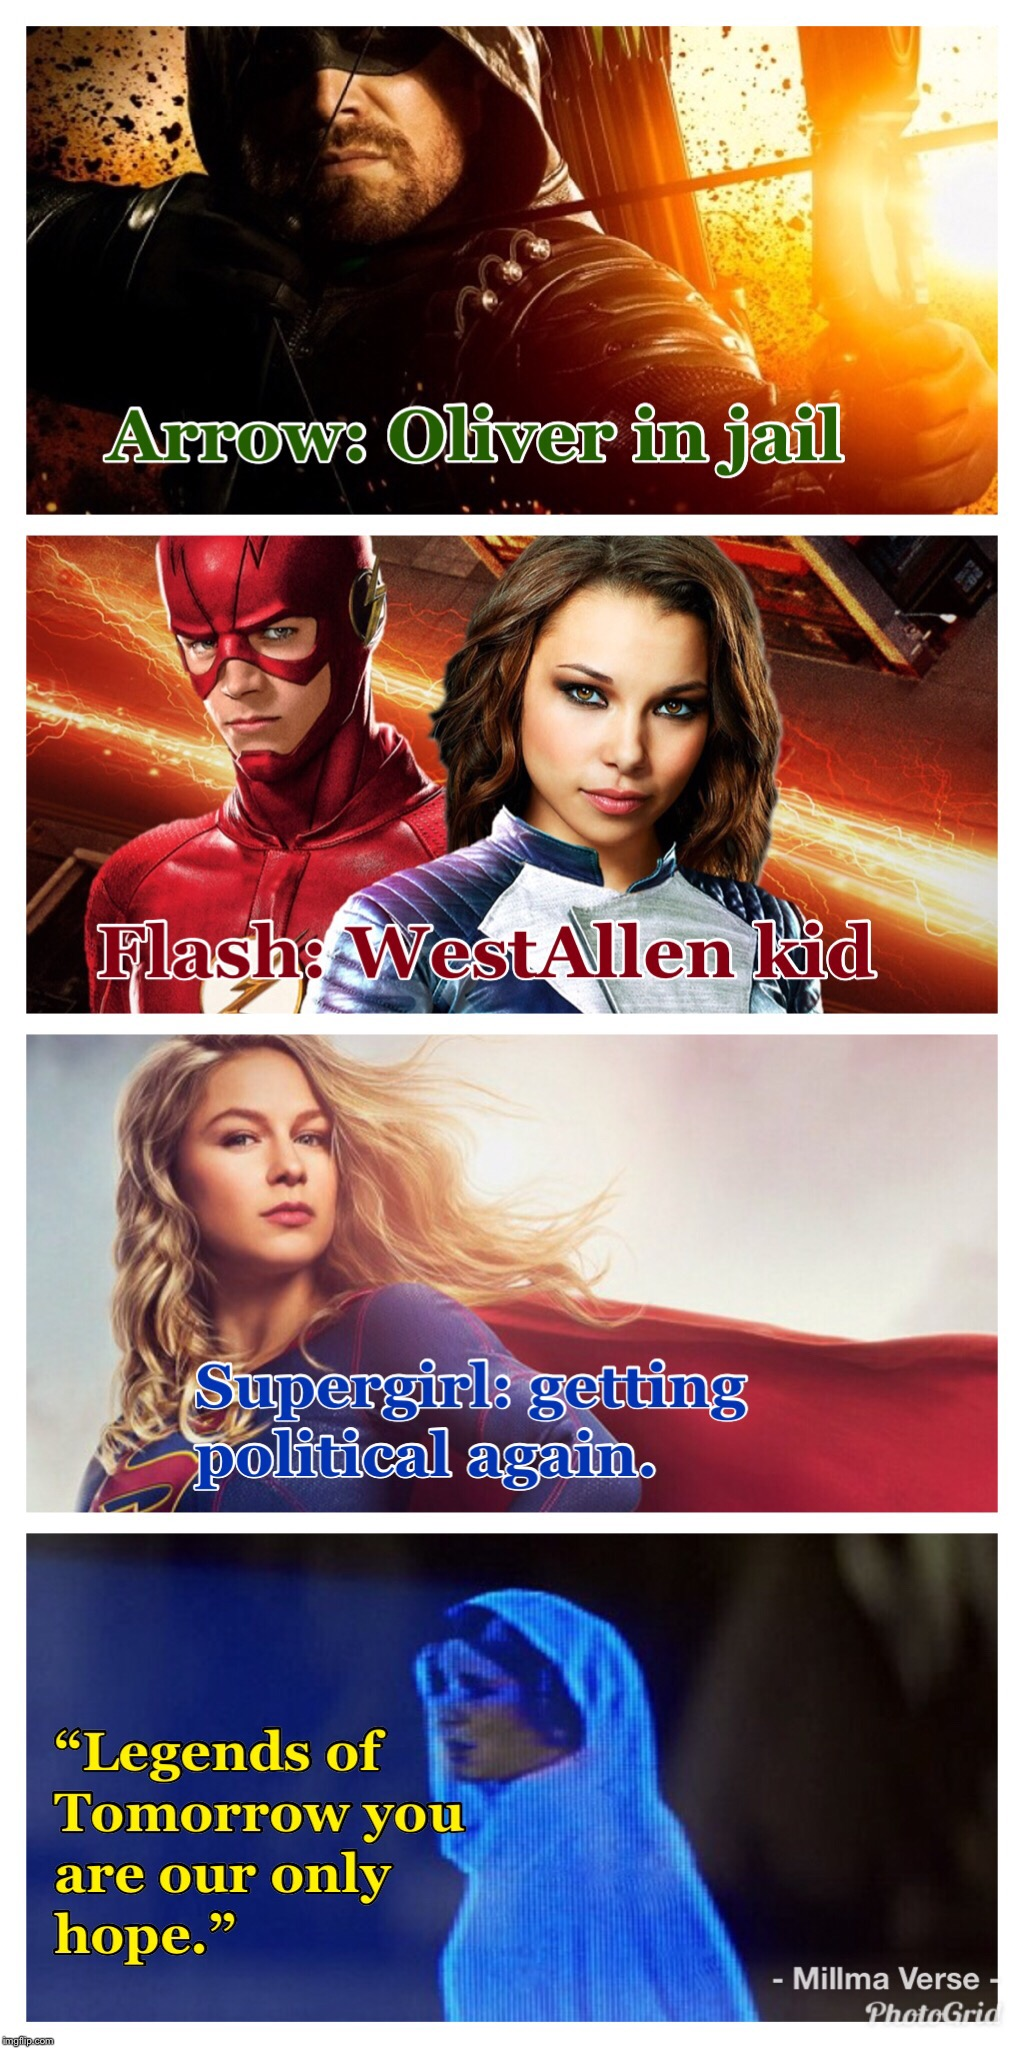 Legends is the One Hope | image tagged in the flash,arrow,legends of tomorrow,supergirl,arrowverse,star wars | made w/ Imgflip meme maker